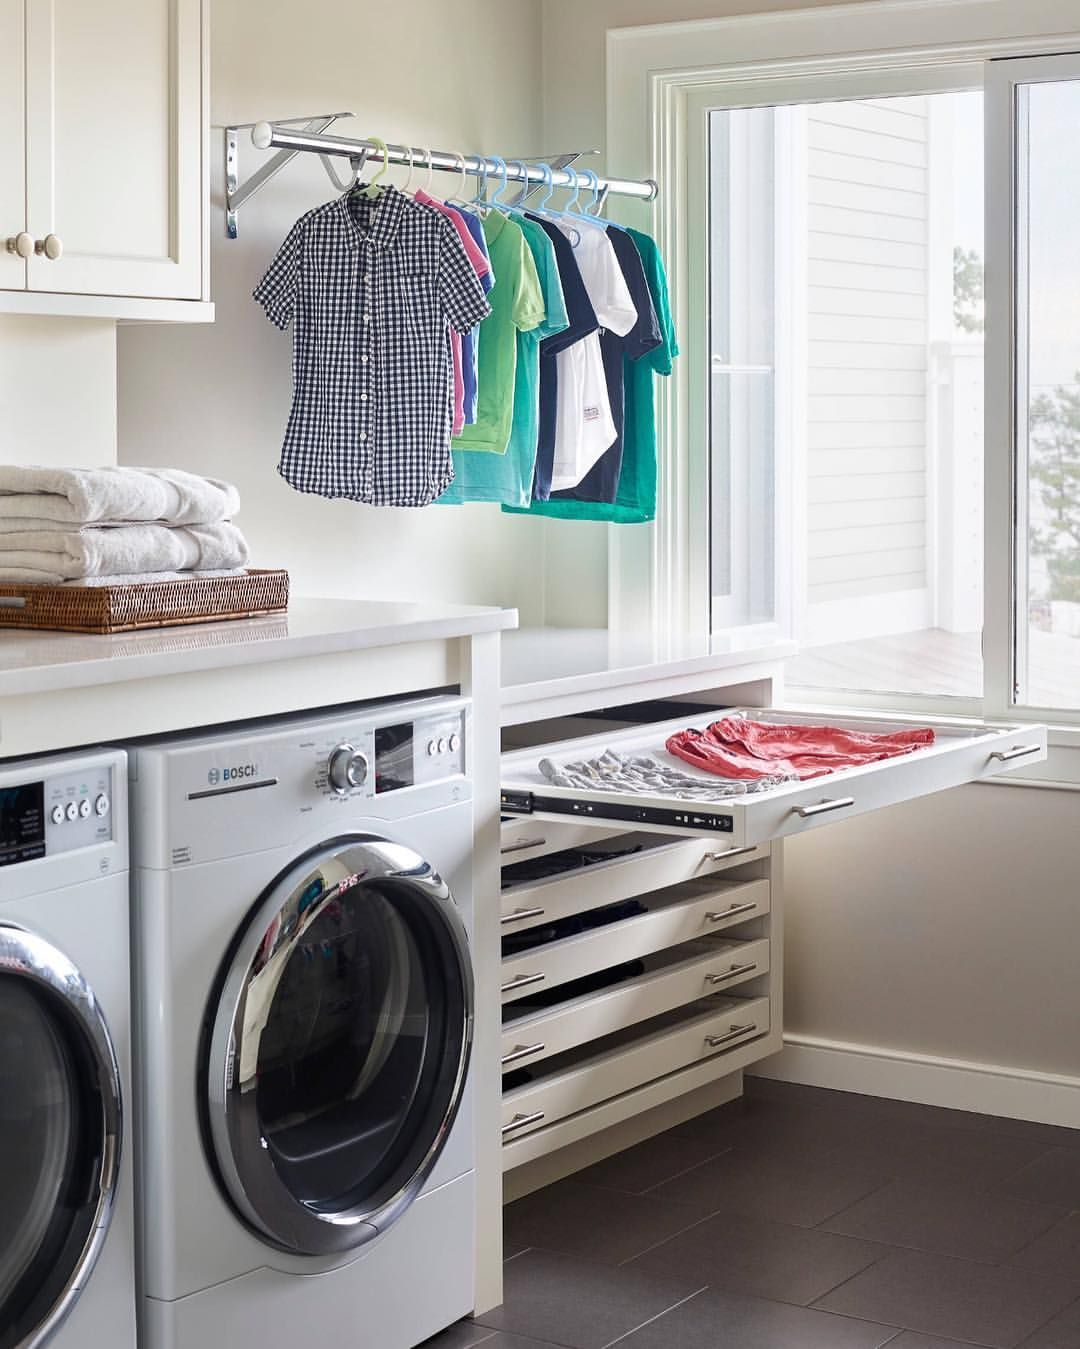 If You Air Dry A Lot Of Clothing This Laundry Set Up Would Be A